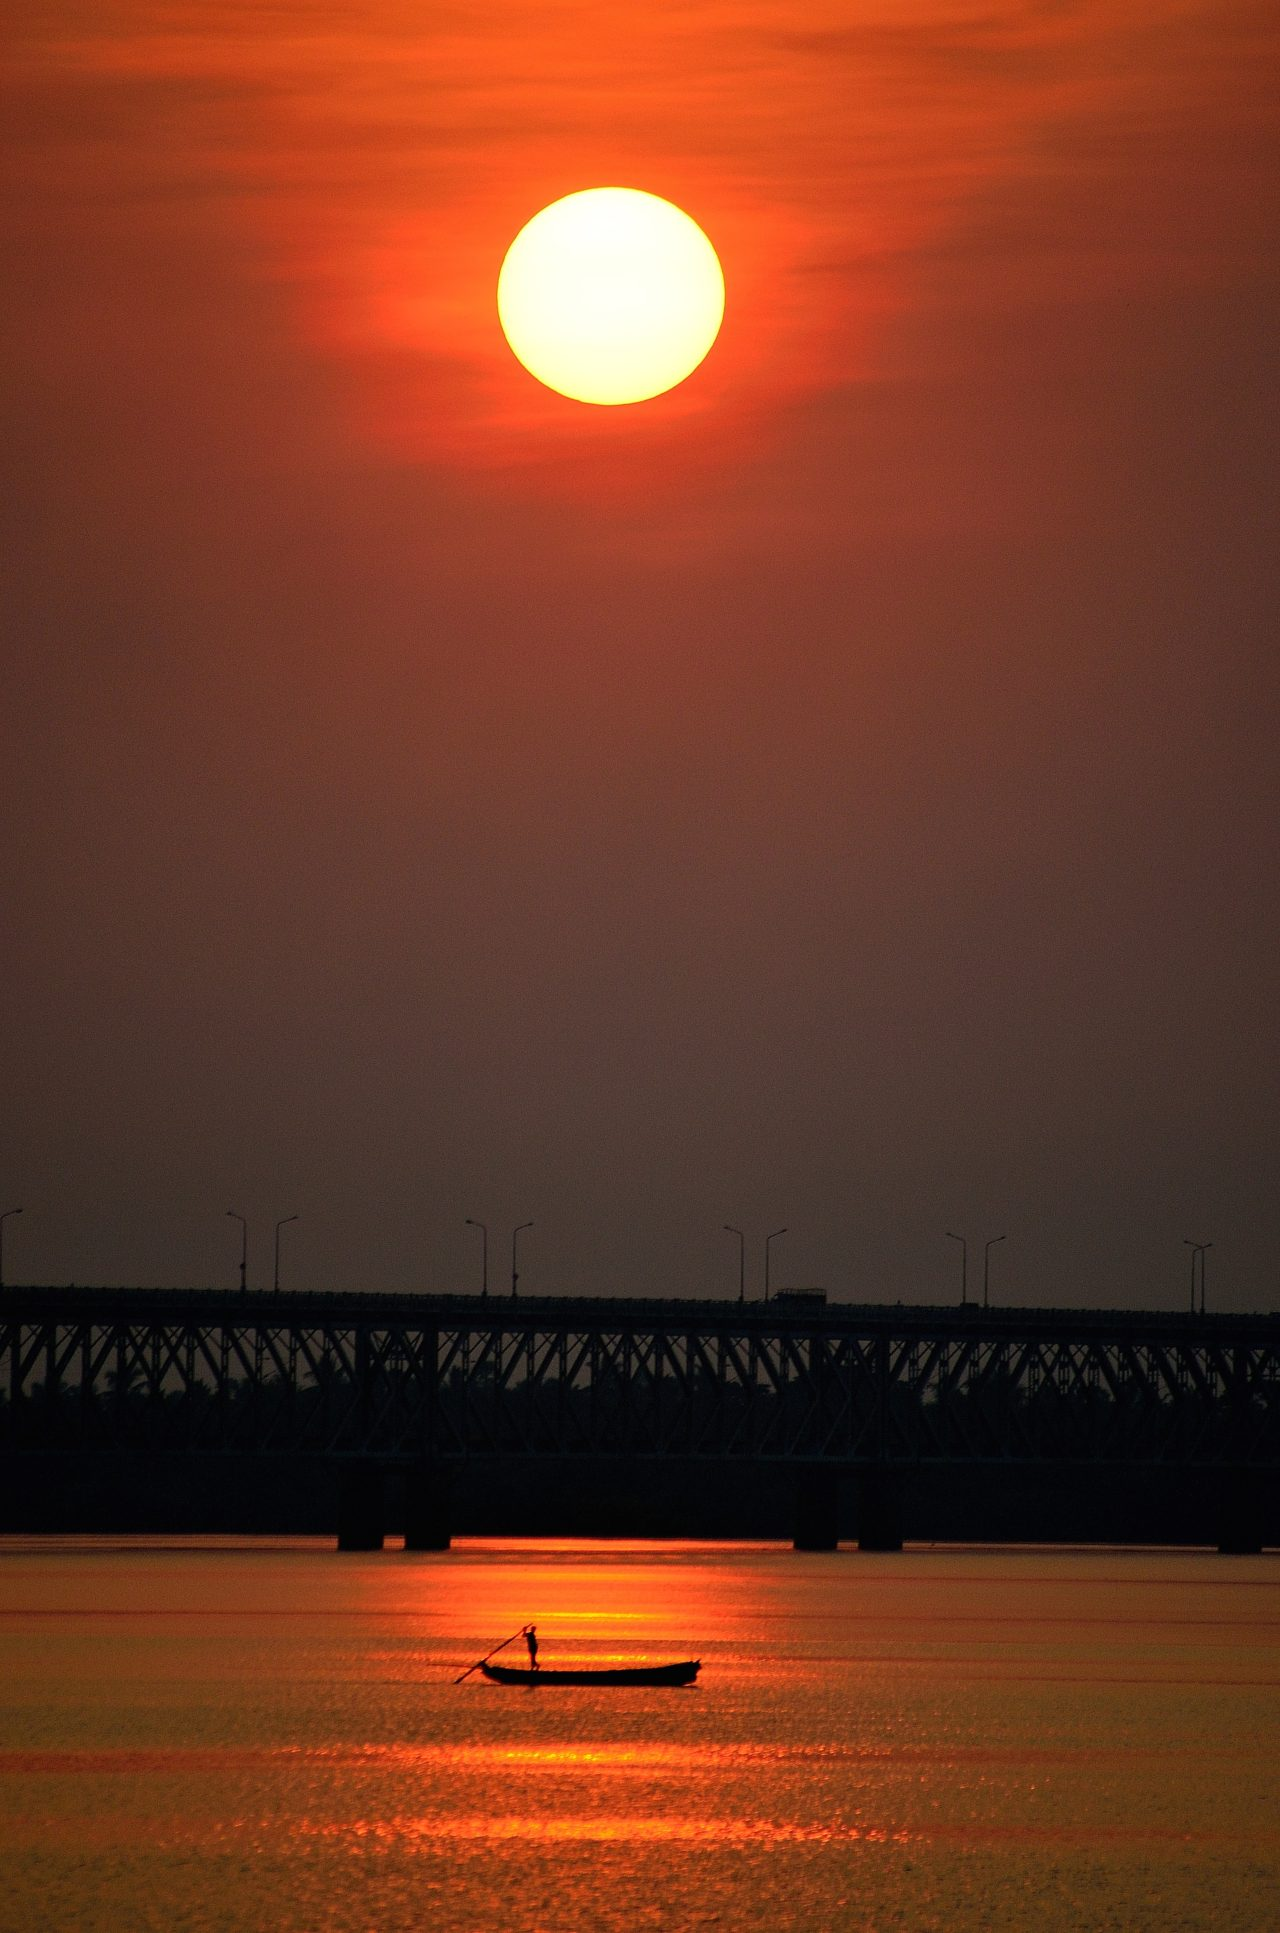 Rajahmundry bridge, Andhra Pradesh, India, by Kalyan Kumar